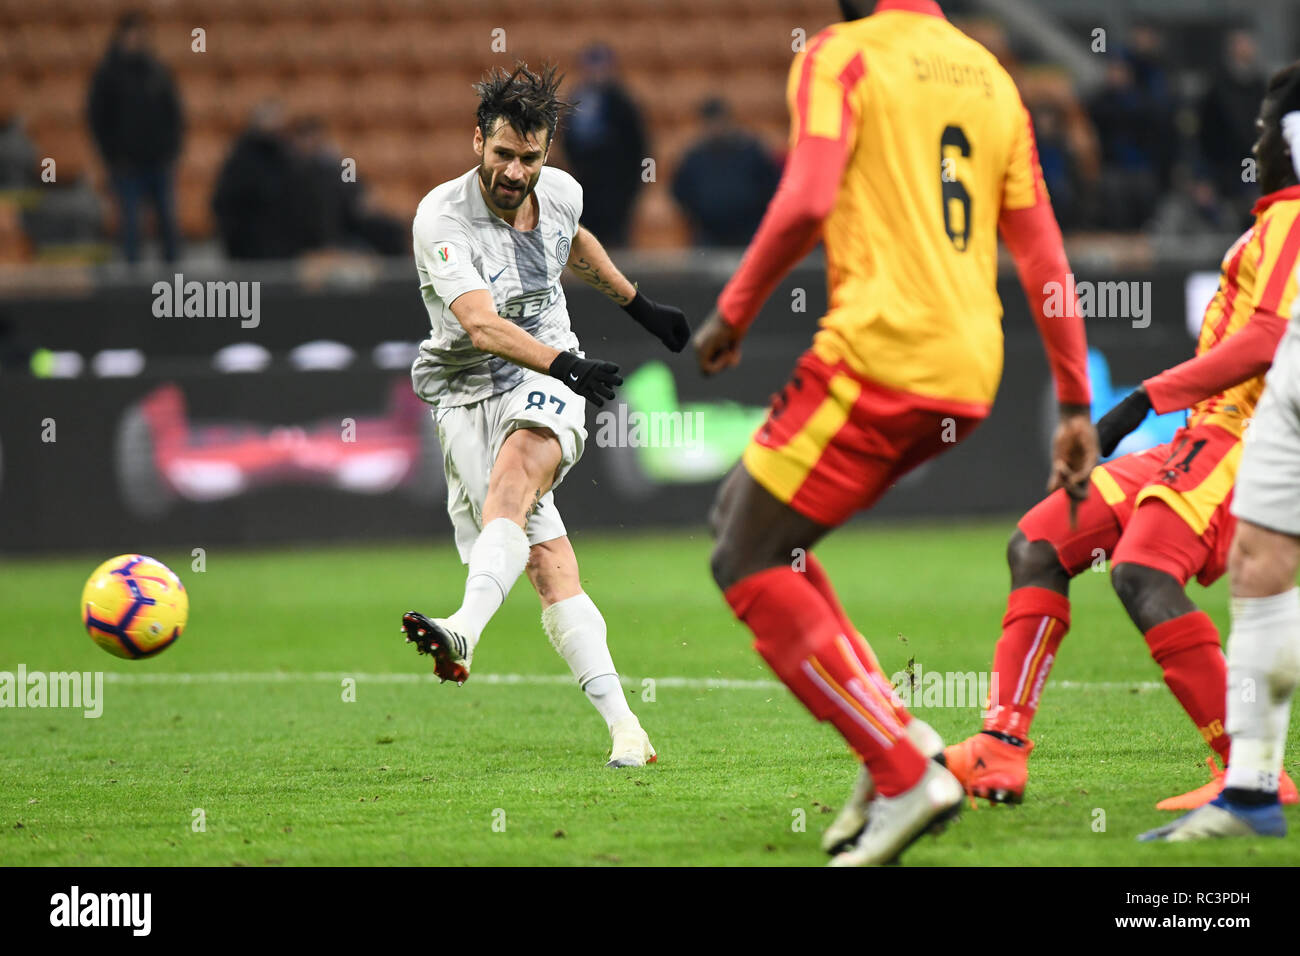 Milan, Italy. 13th Jan 2019. Midfielder Antonio Candreva (Inter) tries to score during the Italian Cup 'Coppa Italia' football match, Inter Milan vs Benevento Calcio at San Siro Meazza Stadium in Milan, Italy on 13 January 2019. The football match is played behind closed doors after Napoli's Senegalese player Kalidou Koulibaly was subject to racist chants by FC Internazionale's 'ultra' fans during the Boxing Day match. Credit: Piero Cruciatti/Alamy Live News - Stock Image